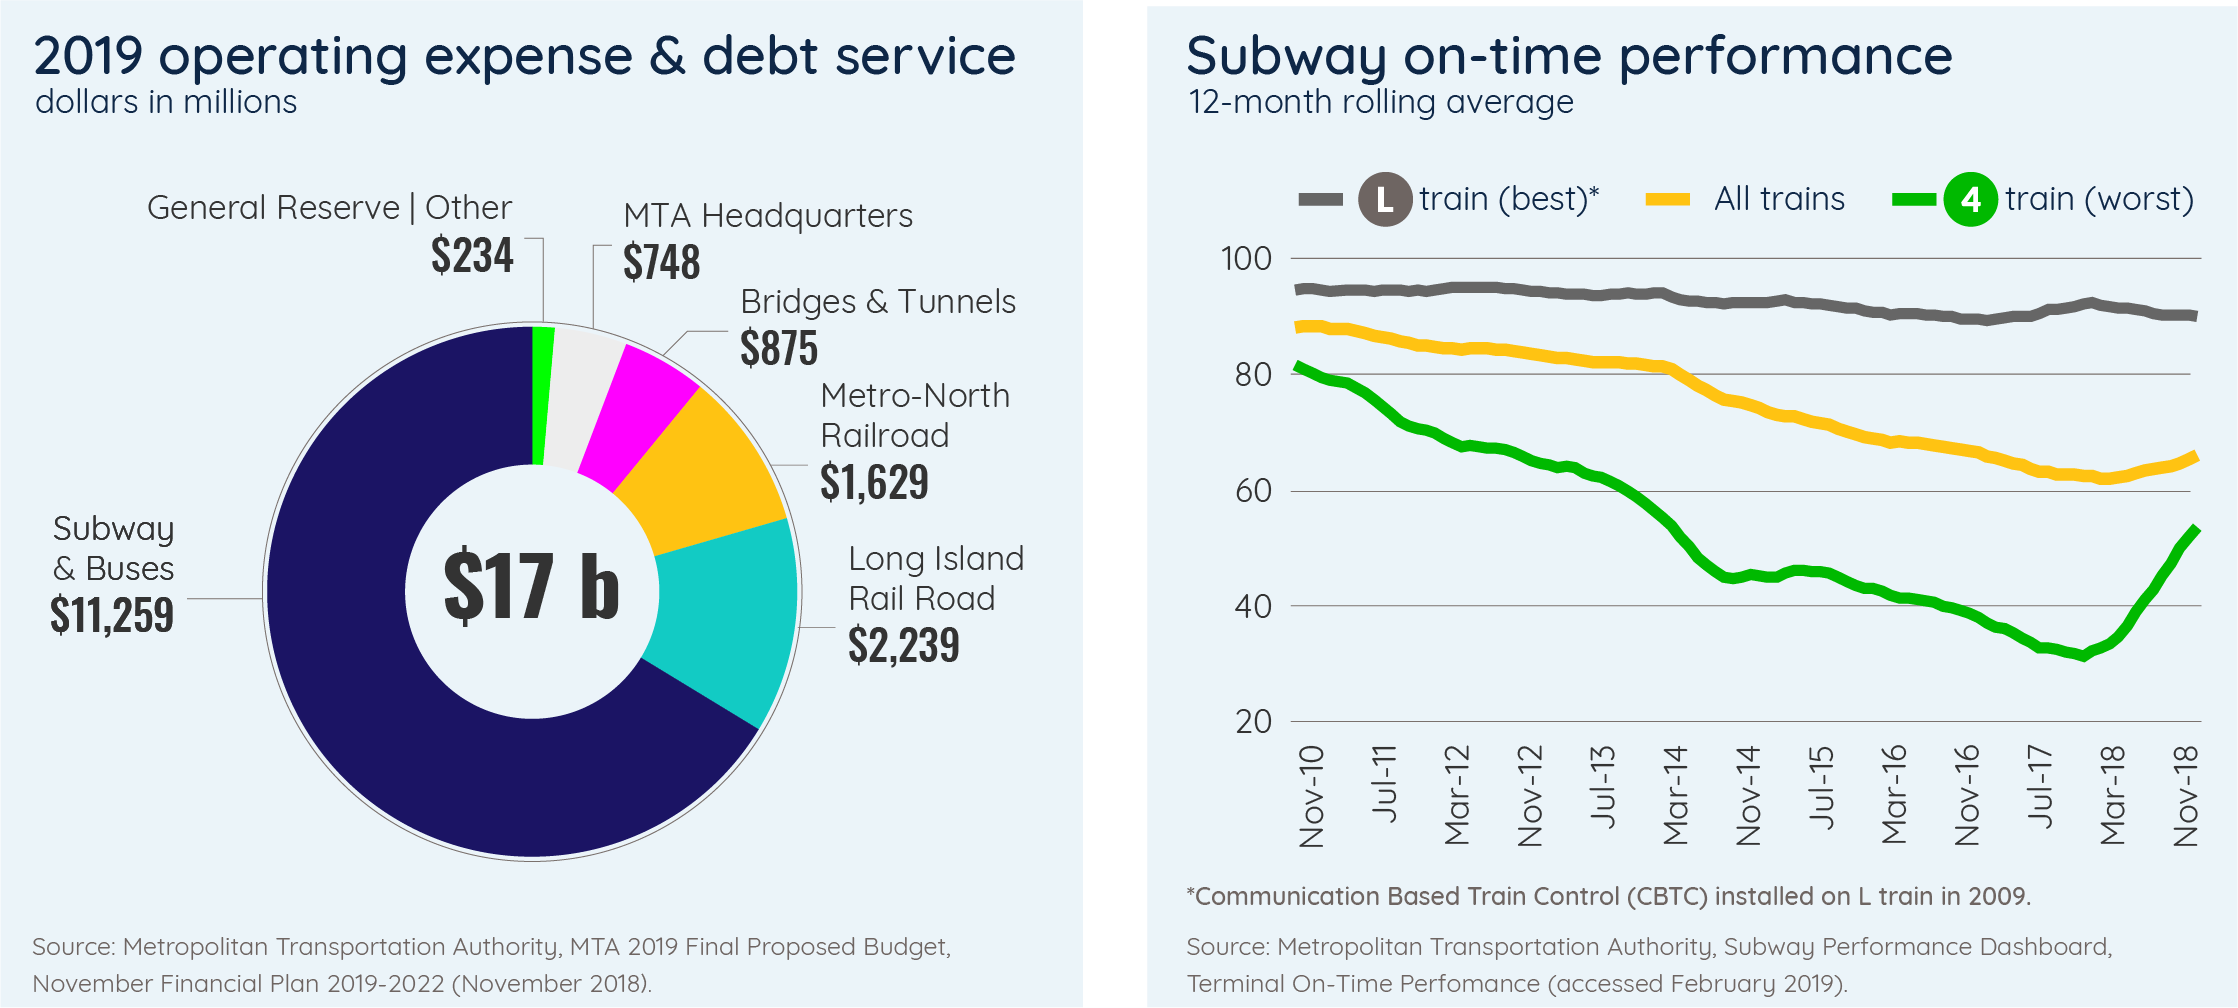 2019 operating expense & debt service/Subway on-time performance